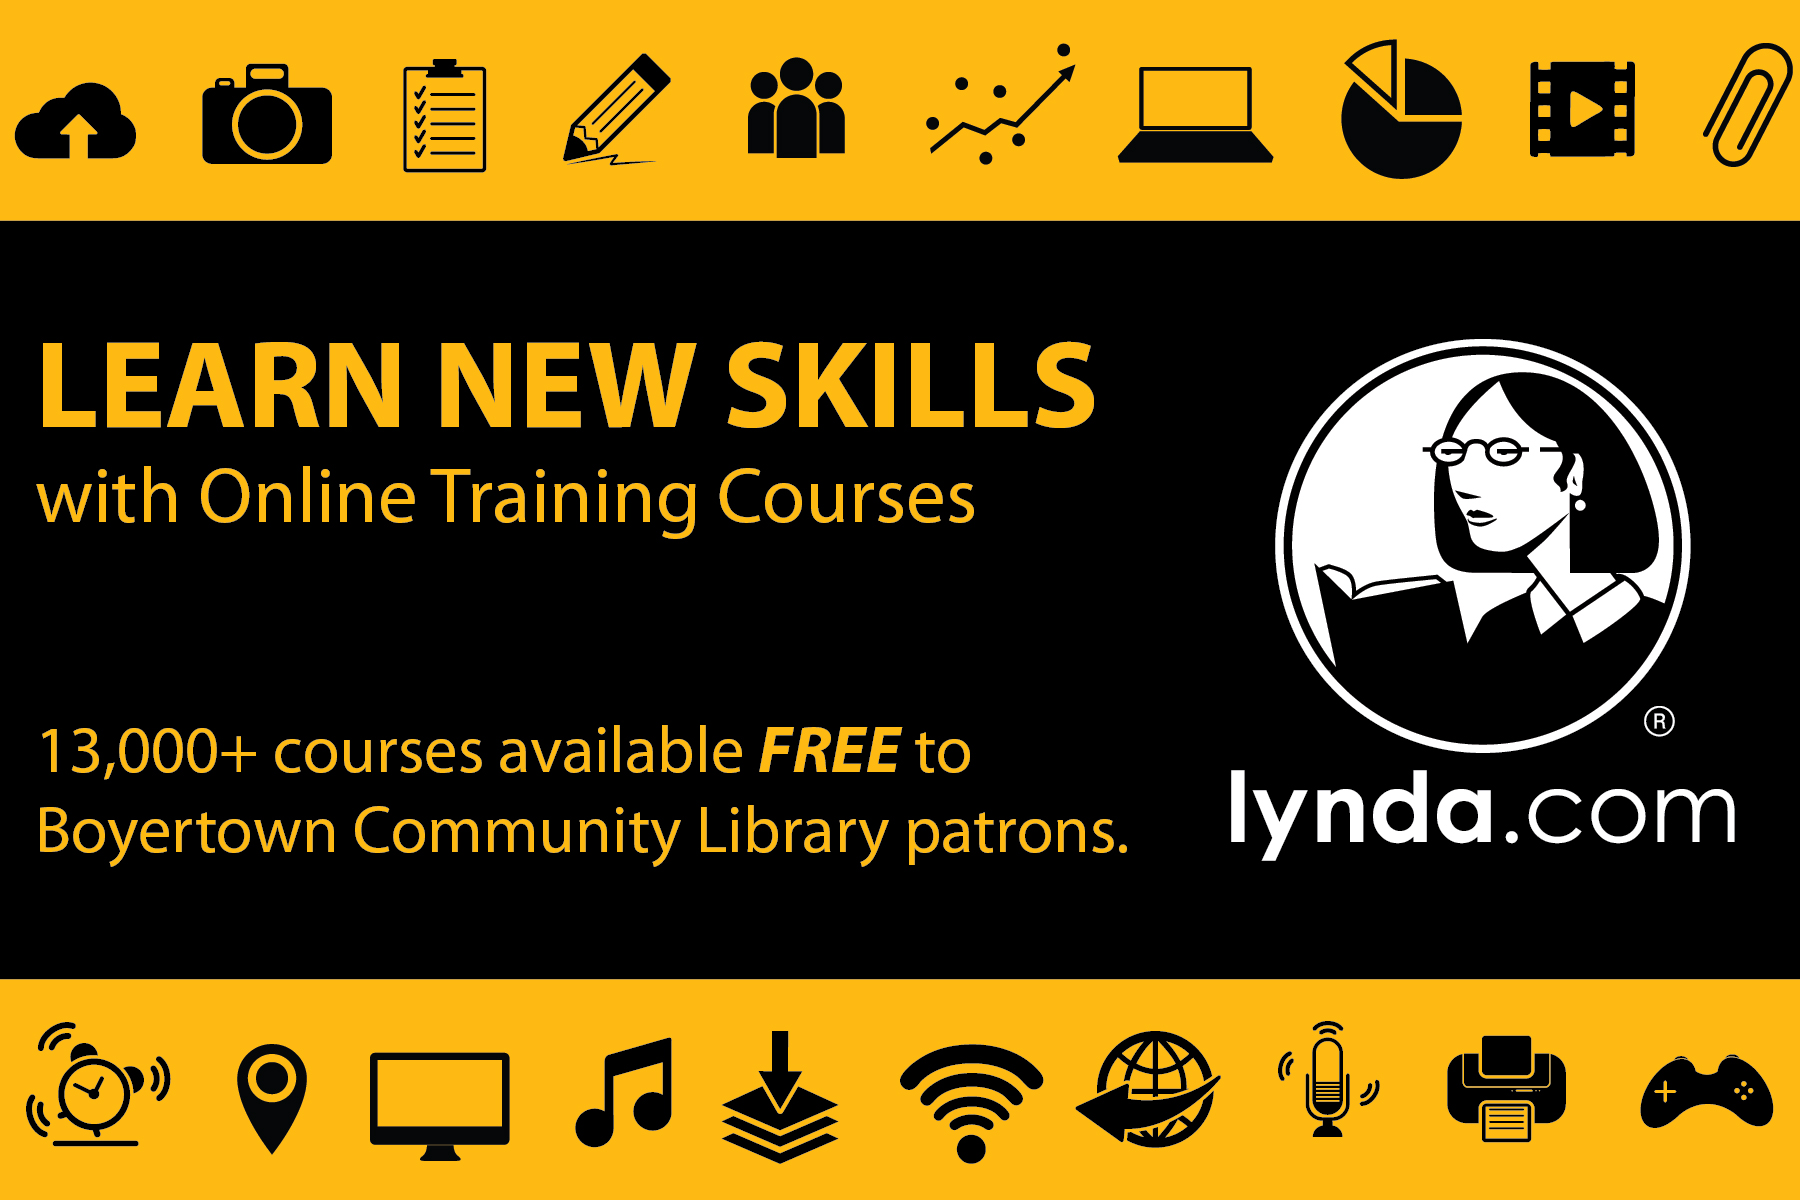 Lynda.com Learning